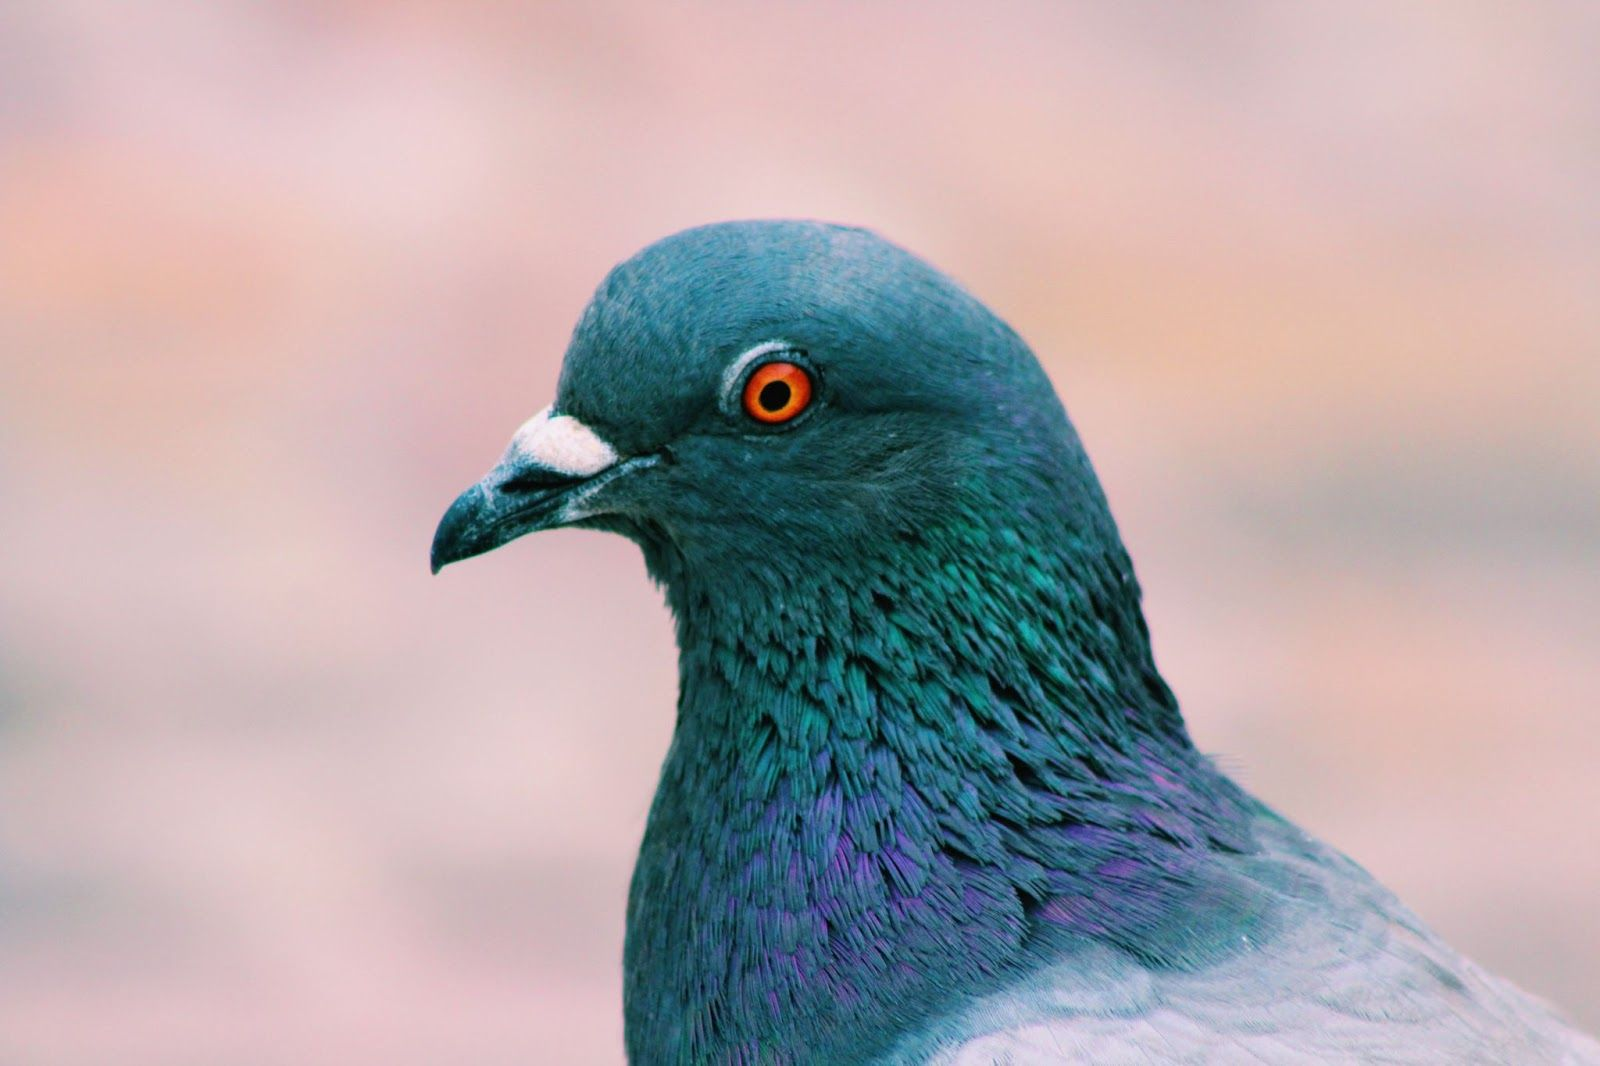 /skills-of-the-modern-day-rock-dove-look-for-these-in-your-email-marketing-tool-fi1q37t8 feature image